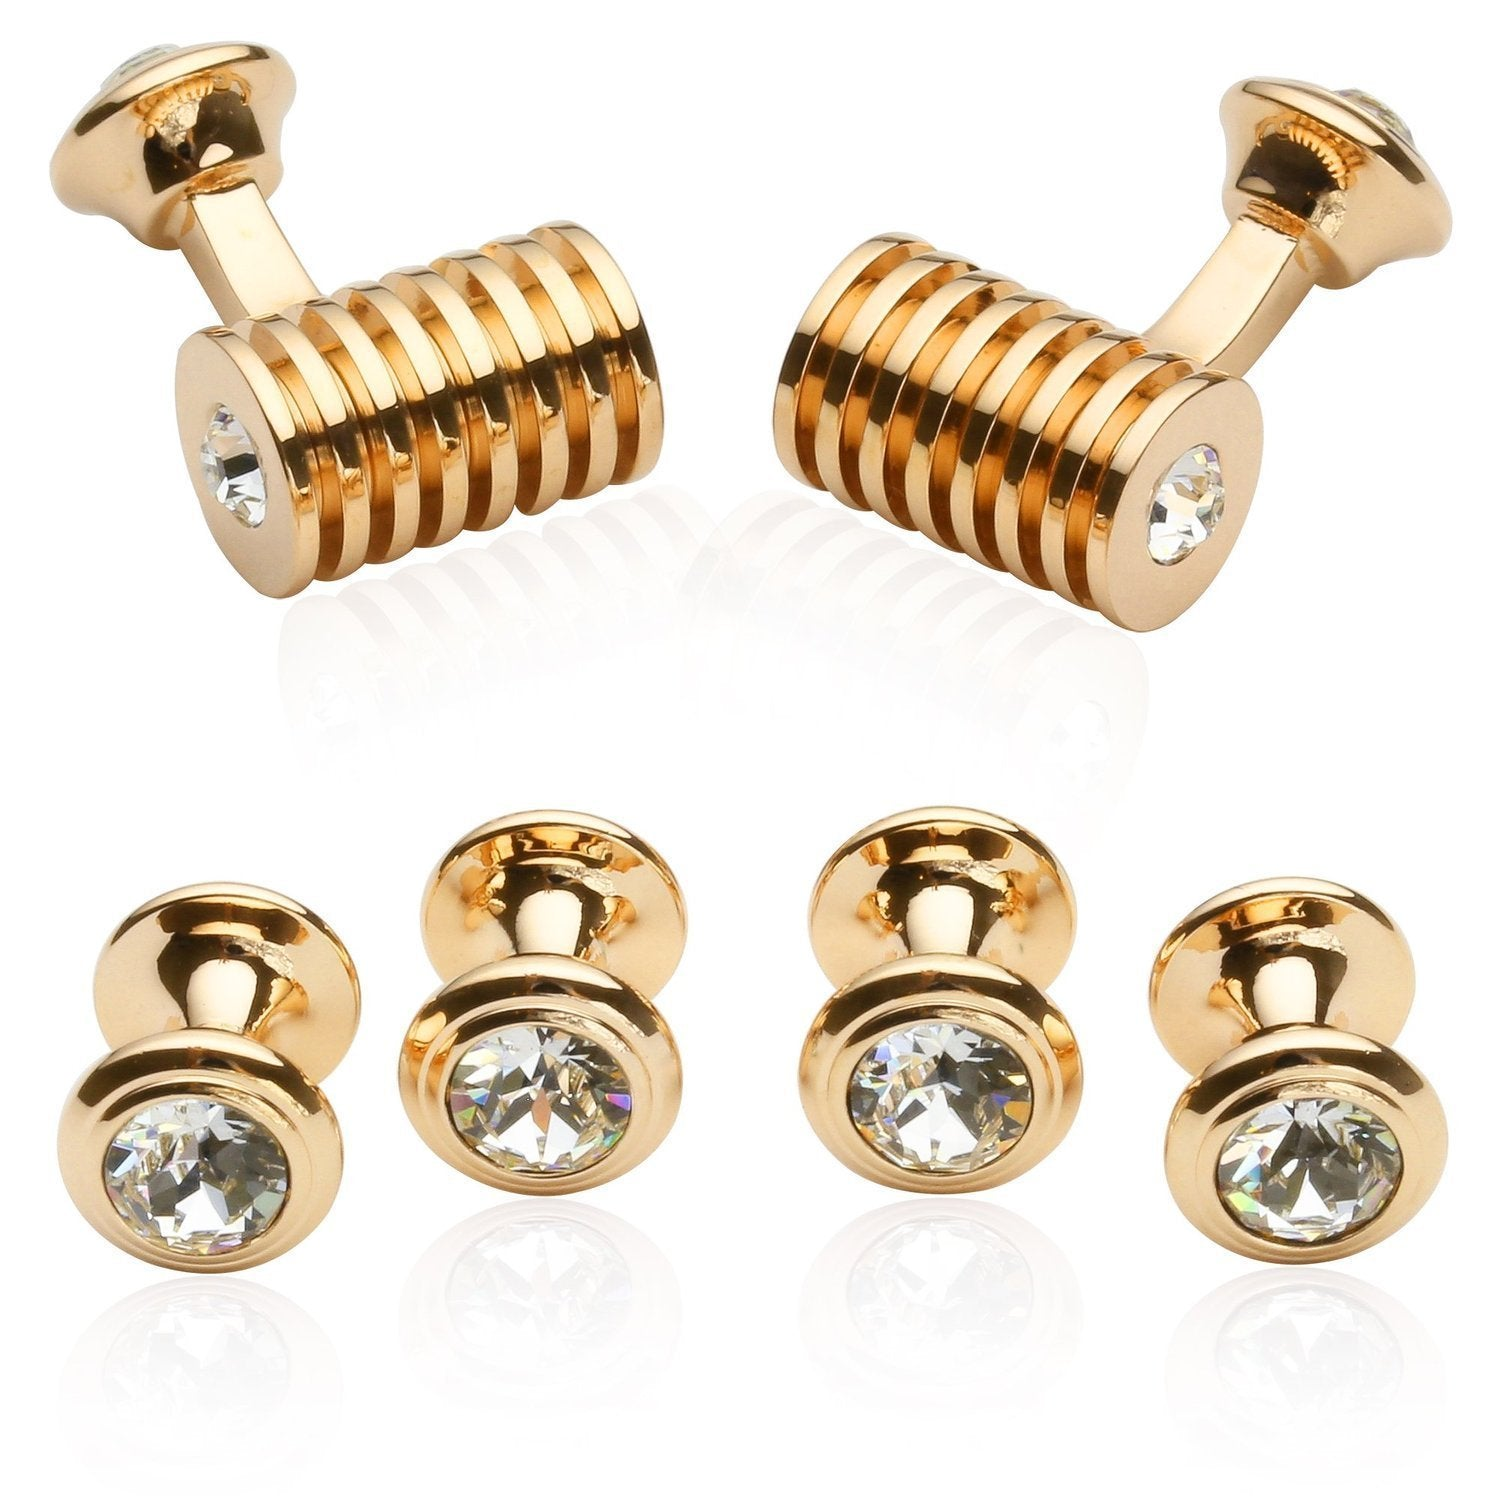 Cuff-Daddy Rose-Gold Plated-Tone Clear Swarovski Barrel Crystal Cufflinks and Studs Formal Set with Presentation Box